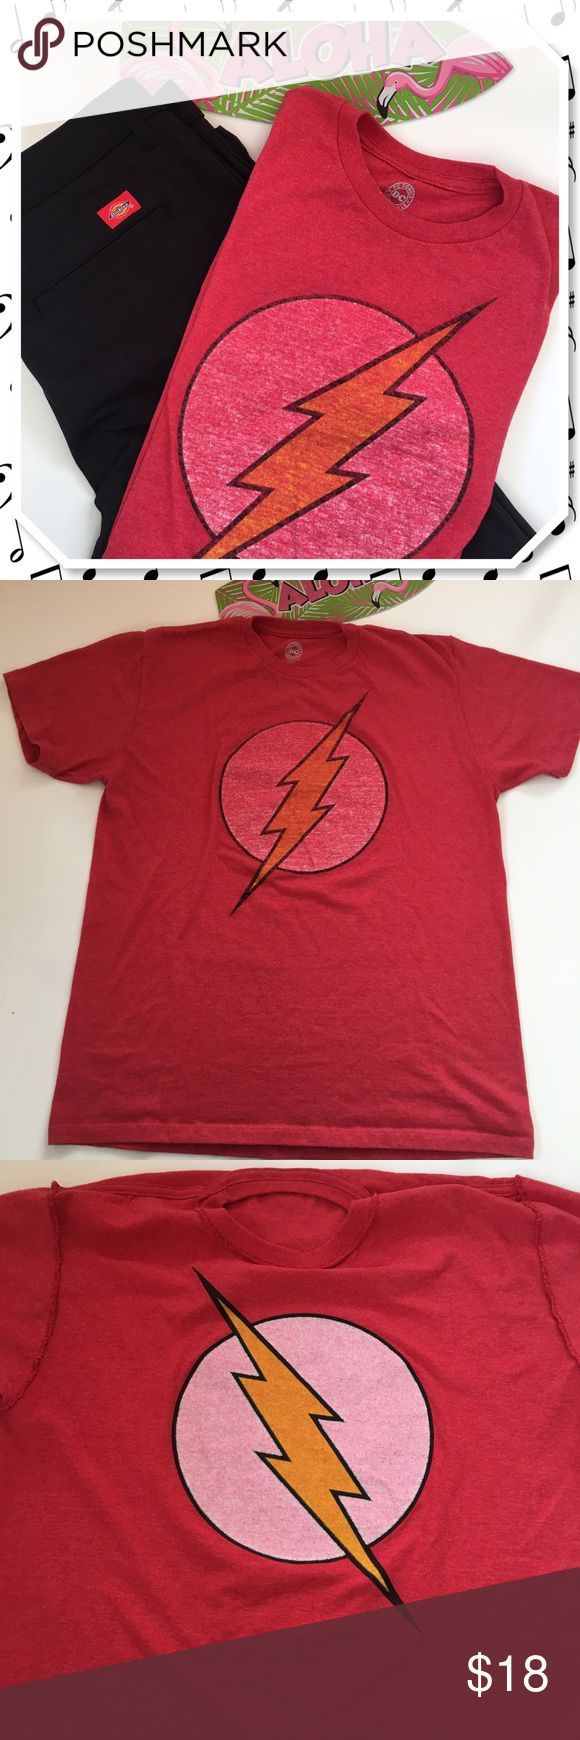 ⚡The Flash Comic Graphic Tee⚡ Bazinga! Who doesn't love Sheldon in the Big Bang Theory? Well, rock his comic book nerd style in this The Flash graphic tee. Iron on print in was done intentionally on the inside of the shirt so when worn it gives it a retro fade look. EUC only worn a few times. Hubs started to downsize his closet so keep your eyes open for more men's wears size Large and size 36/31 (ish) ❌womens Dickeys pants sold separately DC Shirts Tees - Short Sleeve